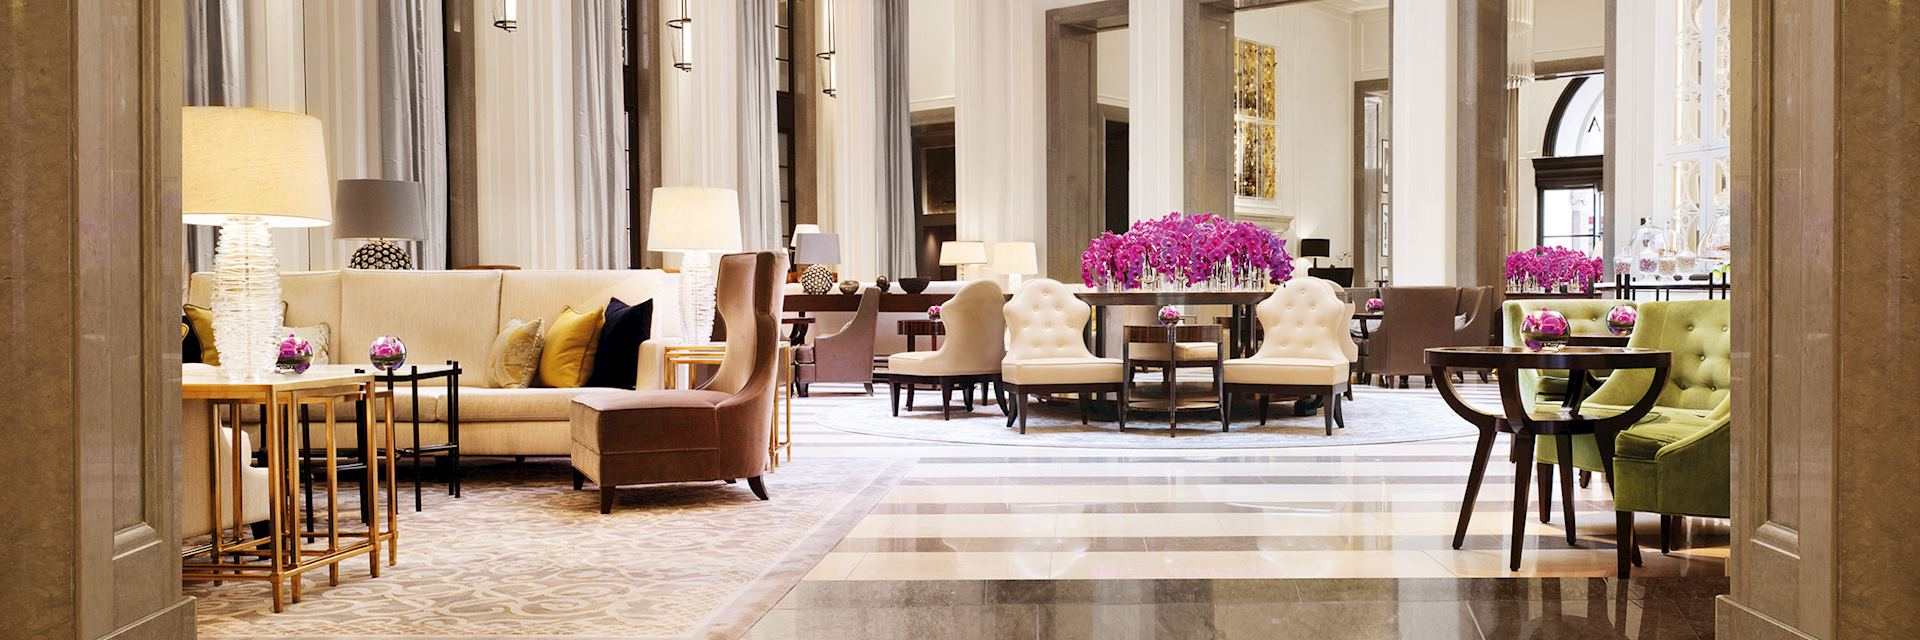 The Corinthia, London